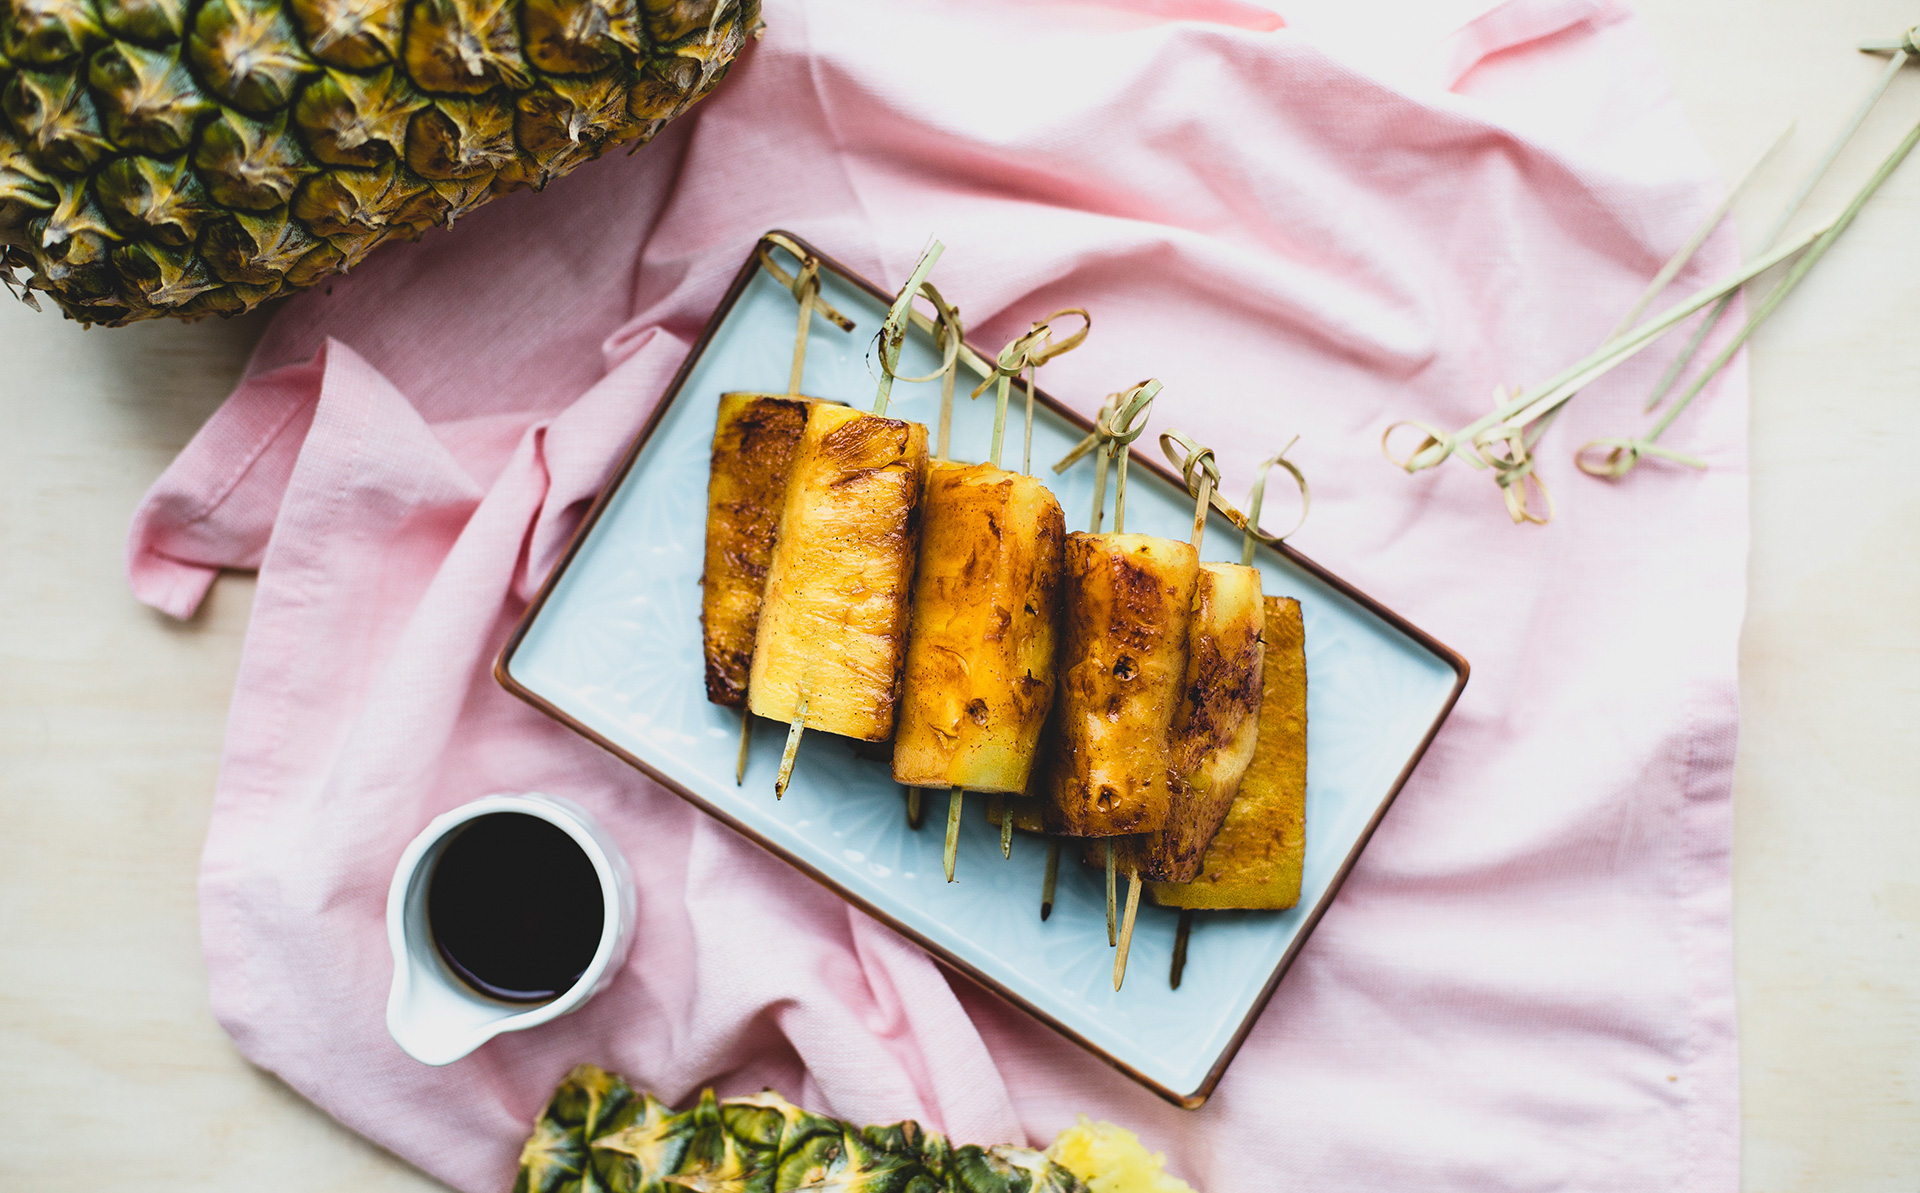 23359australian_pineapples_caramelised_pineapple_skewers-9-2